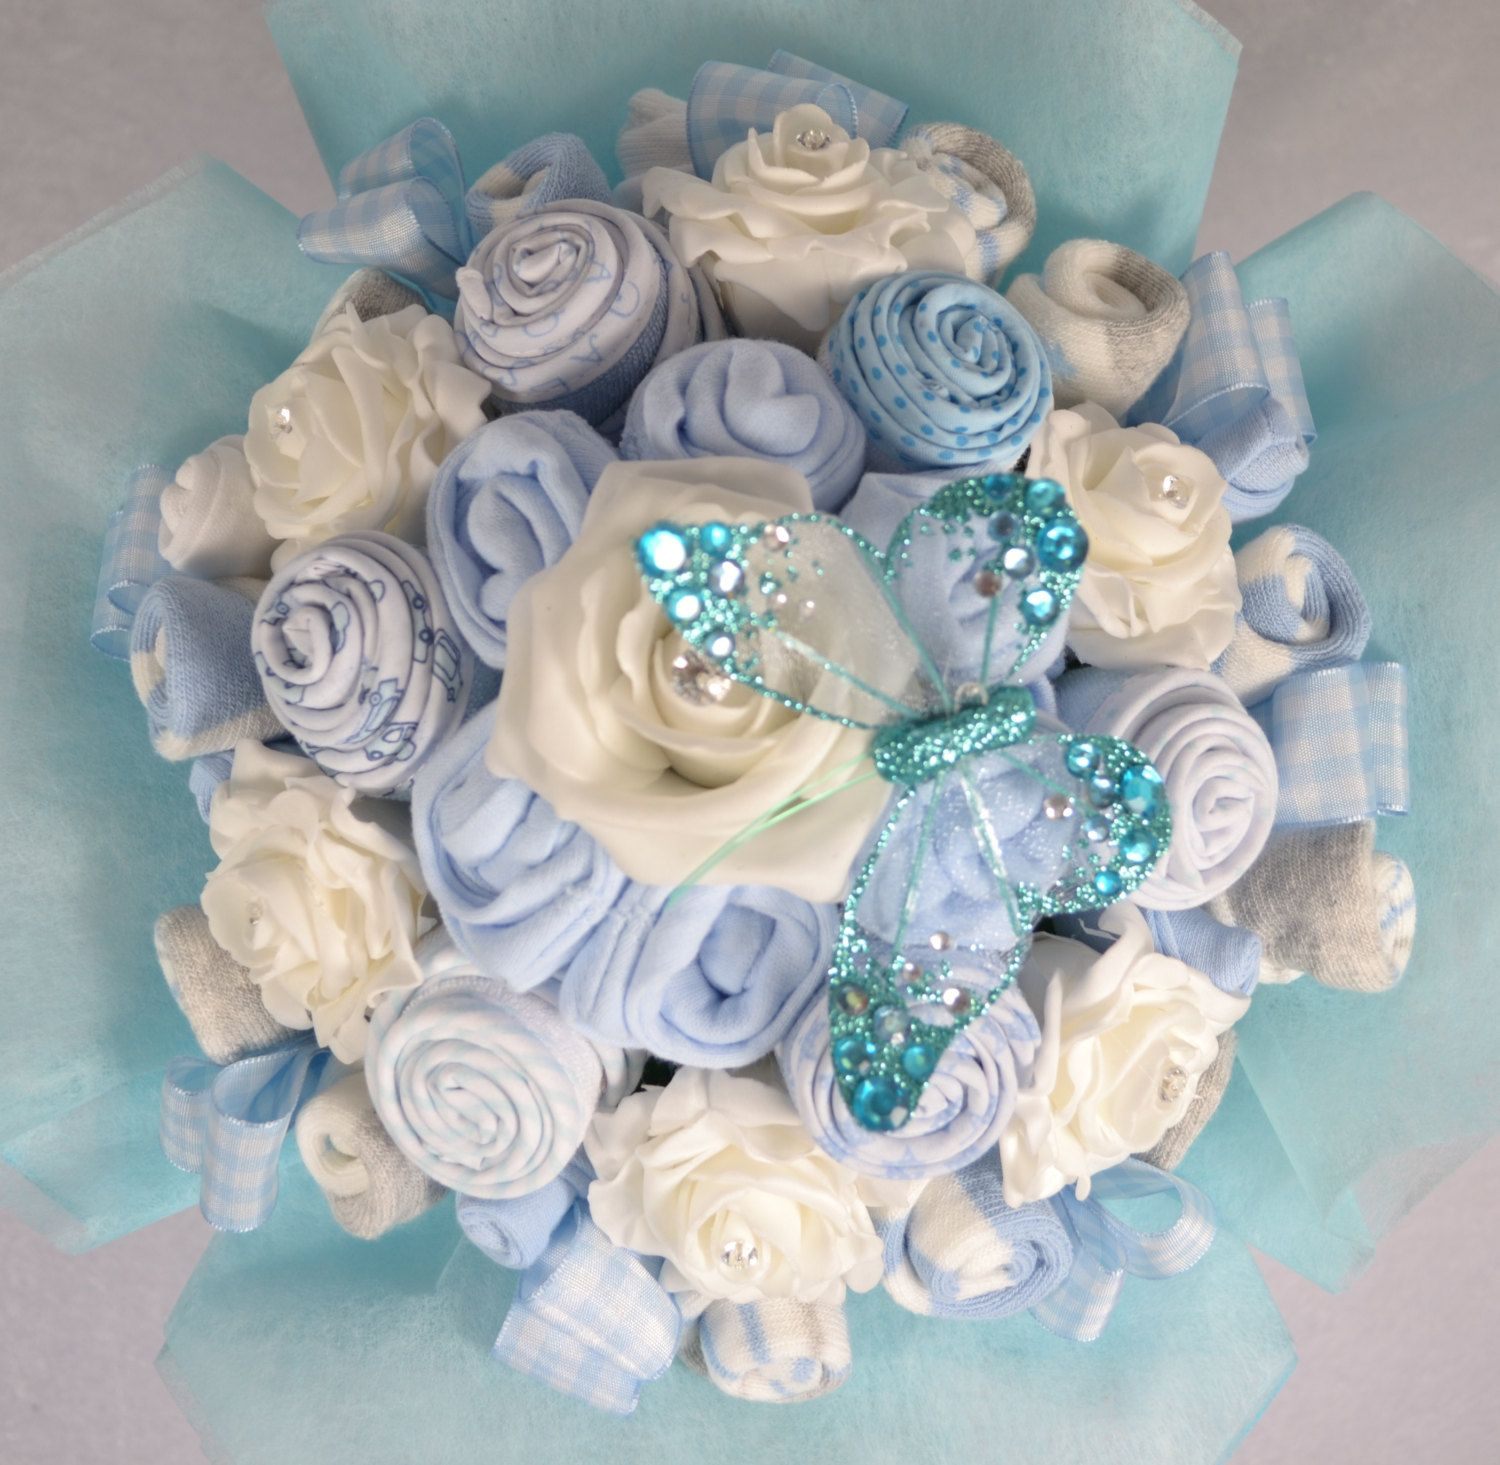 Baby Bouquet 19 items of Baby Clothes Baby Shower Gift Nappy